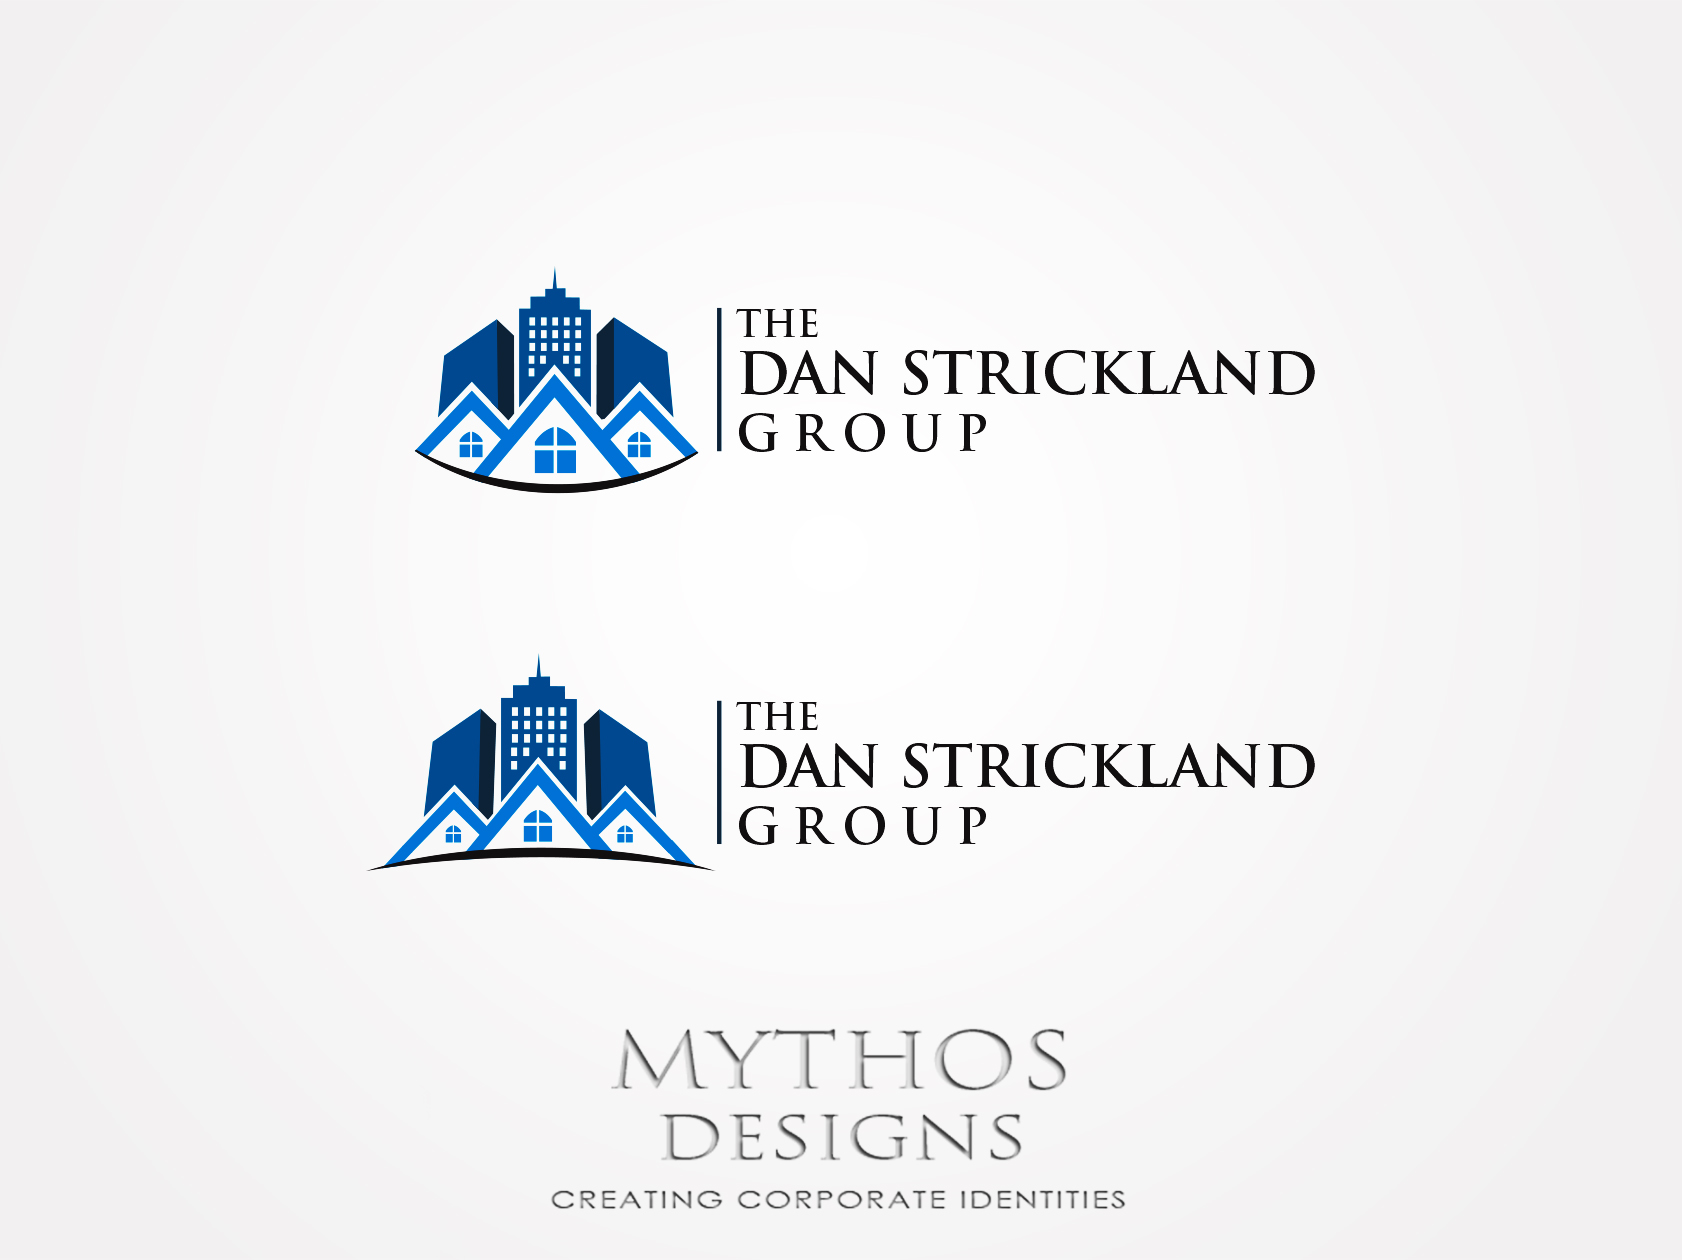 Logo Design by Mythos Designs - Entry No. 352 in the Logo Design Contest Creative Logo Design for The Dan Strickland Group.